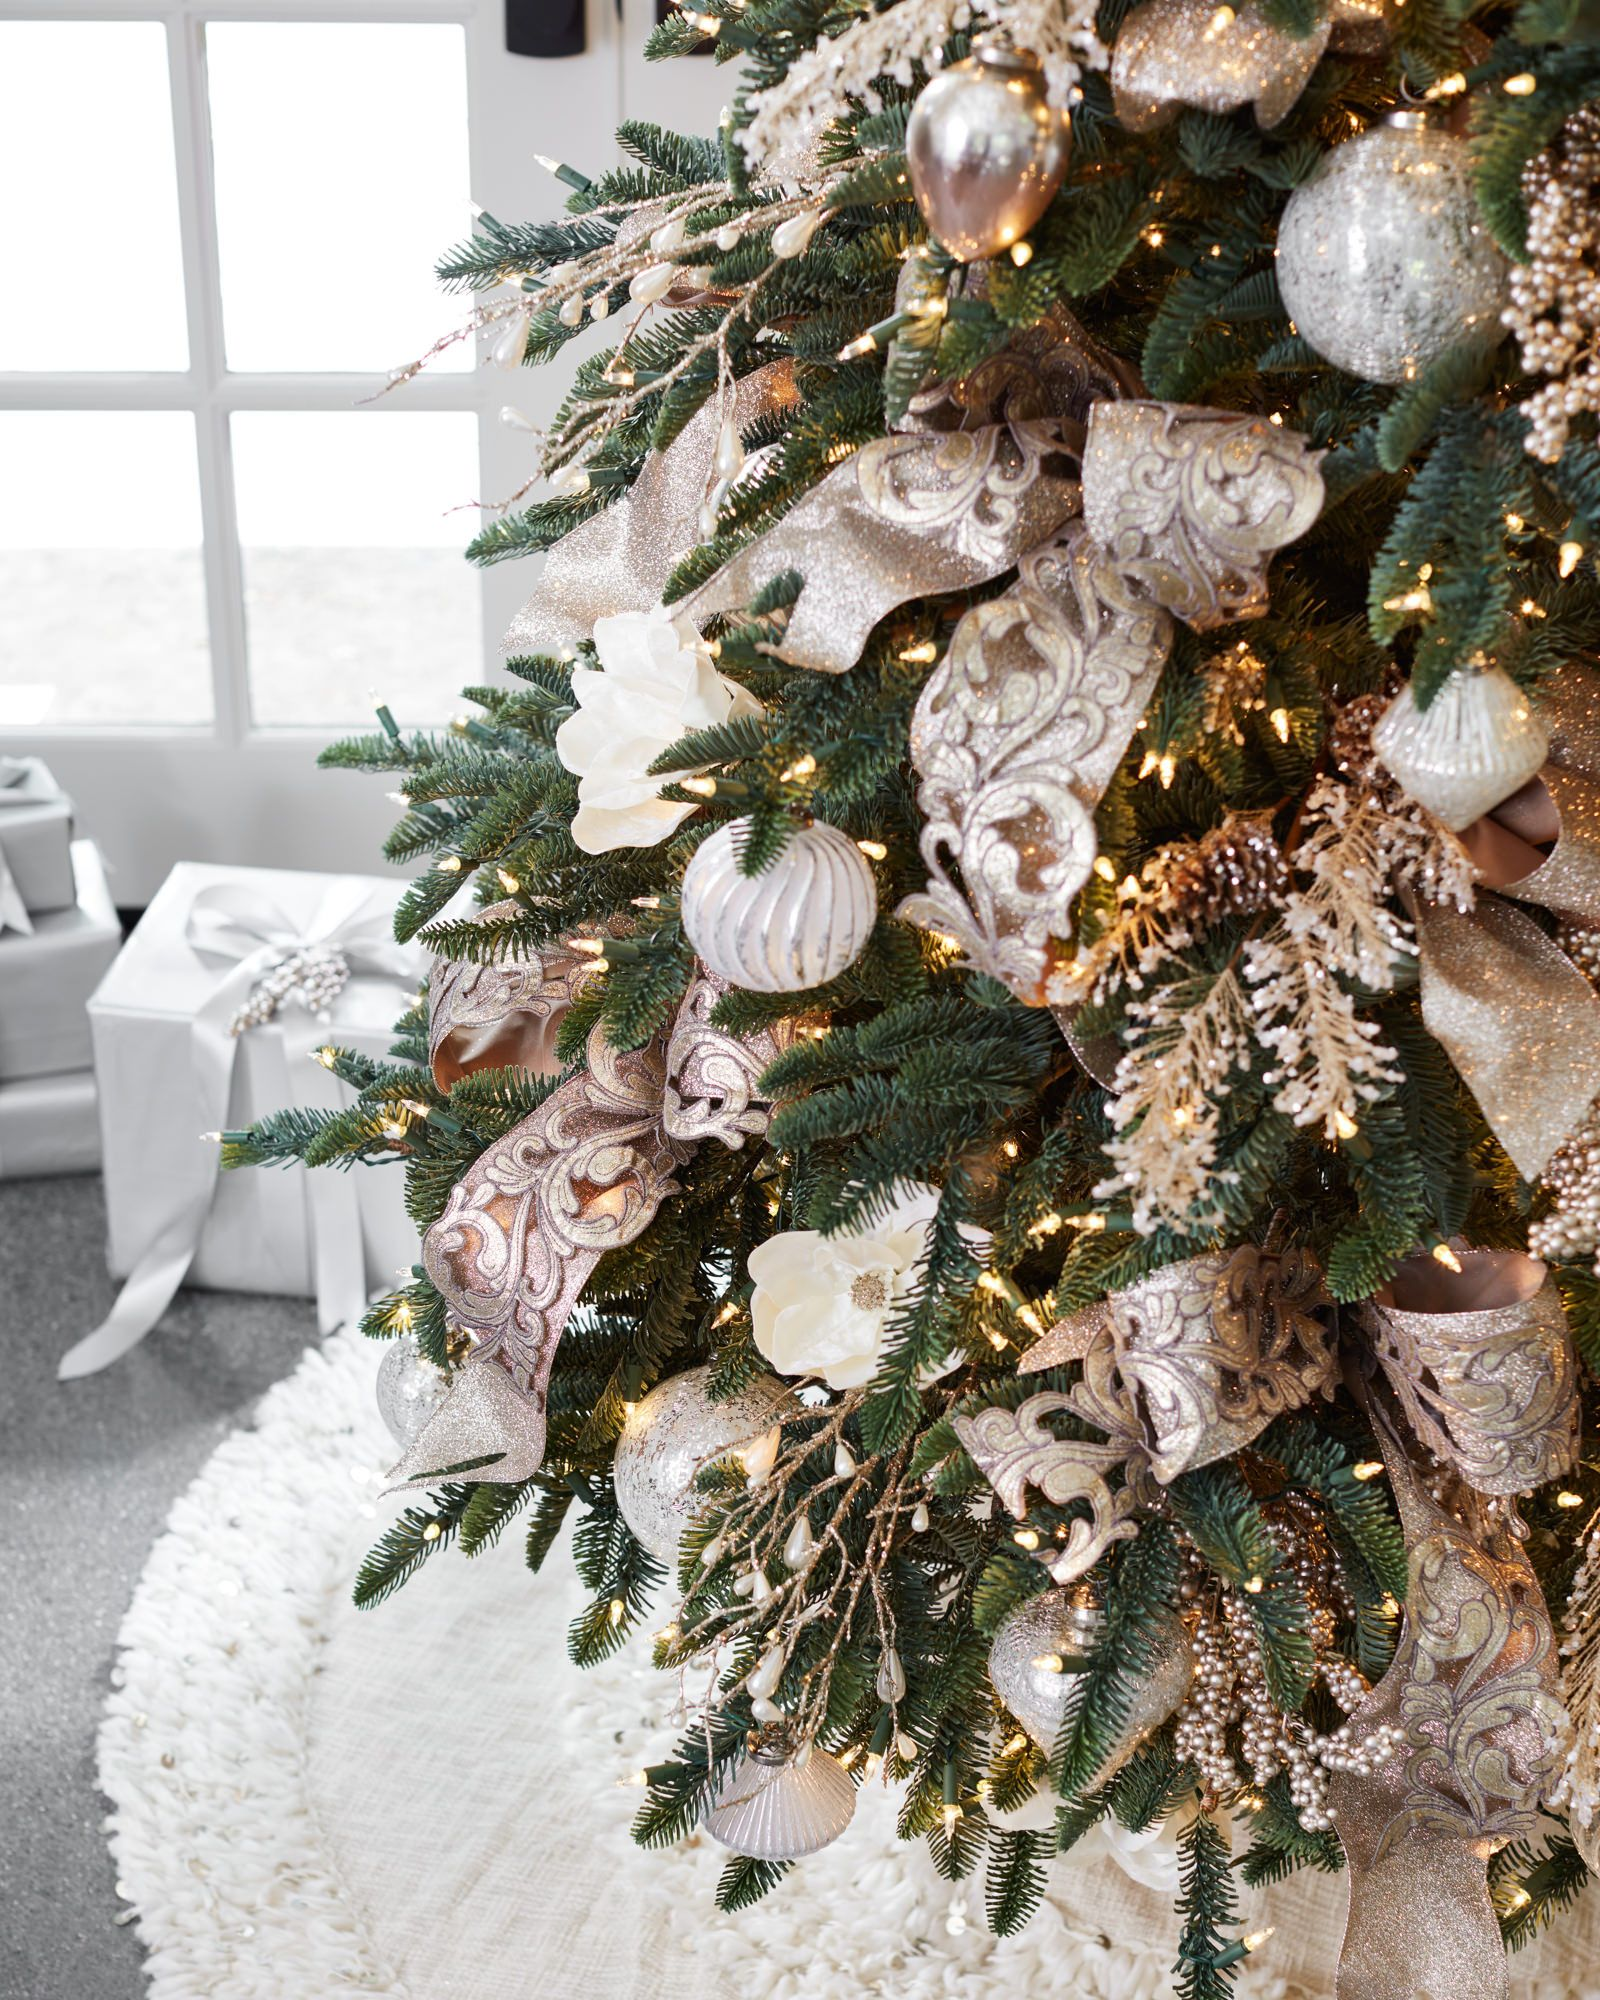 Decorated Tabletop Christmas Trees